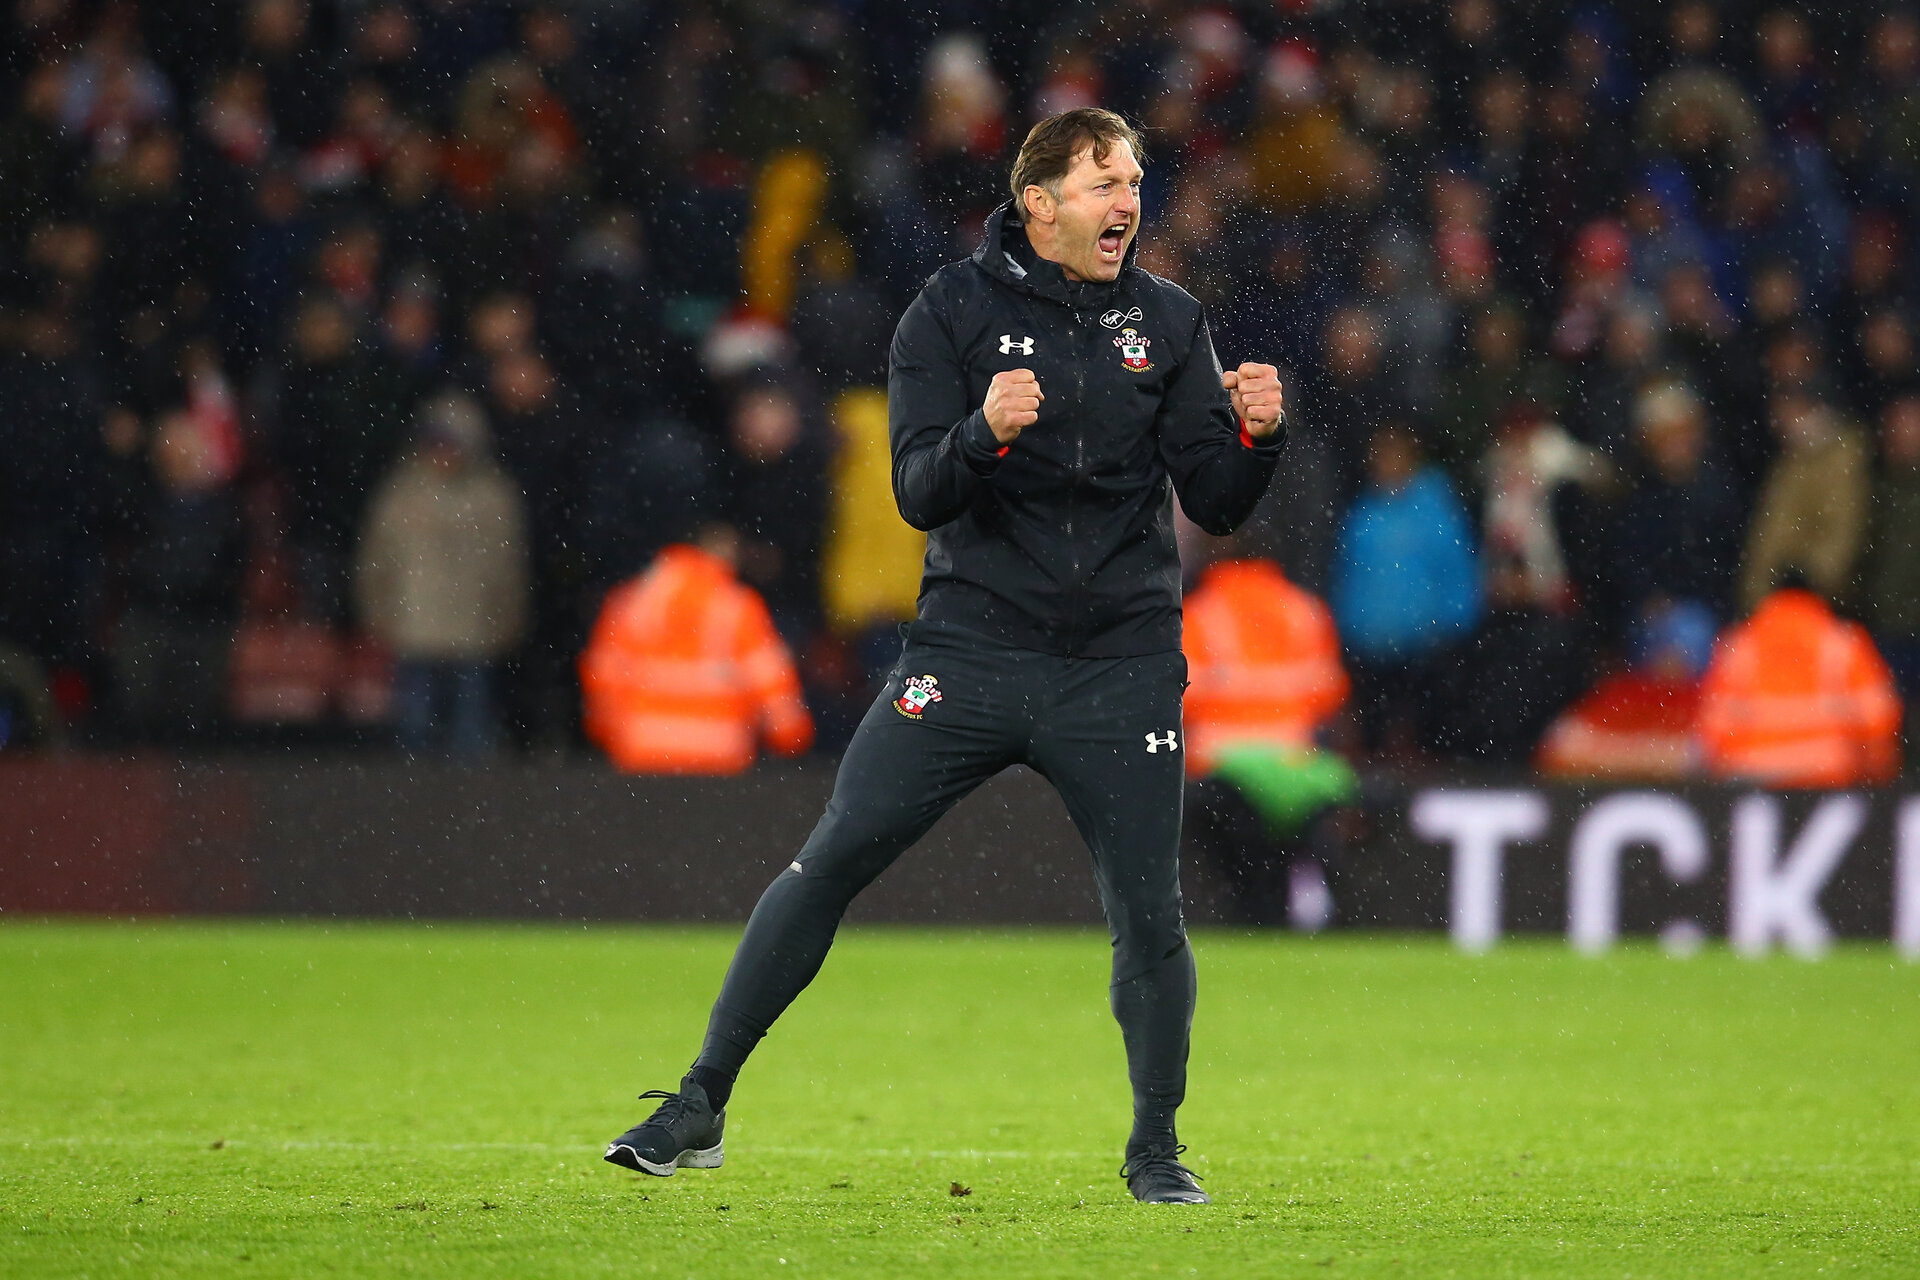 SOUTHAMPTON, ENGLAND - DECEMBER 16: New Southampton FC manager Ralph Hasenhuttl after the final whistle is blown during the Premier League match between Southampton FC and Arsenal FC at St Mary's Stadium on December 16, 2018 in Southampton, United Kingdom. (Photo by James Bridle - Southampton FC/Southampton FC via Getty Images)